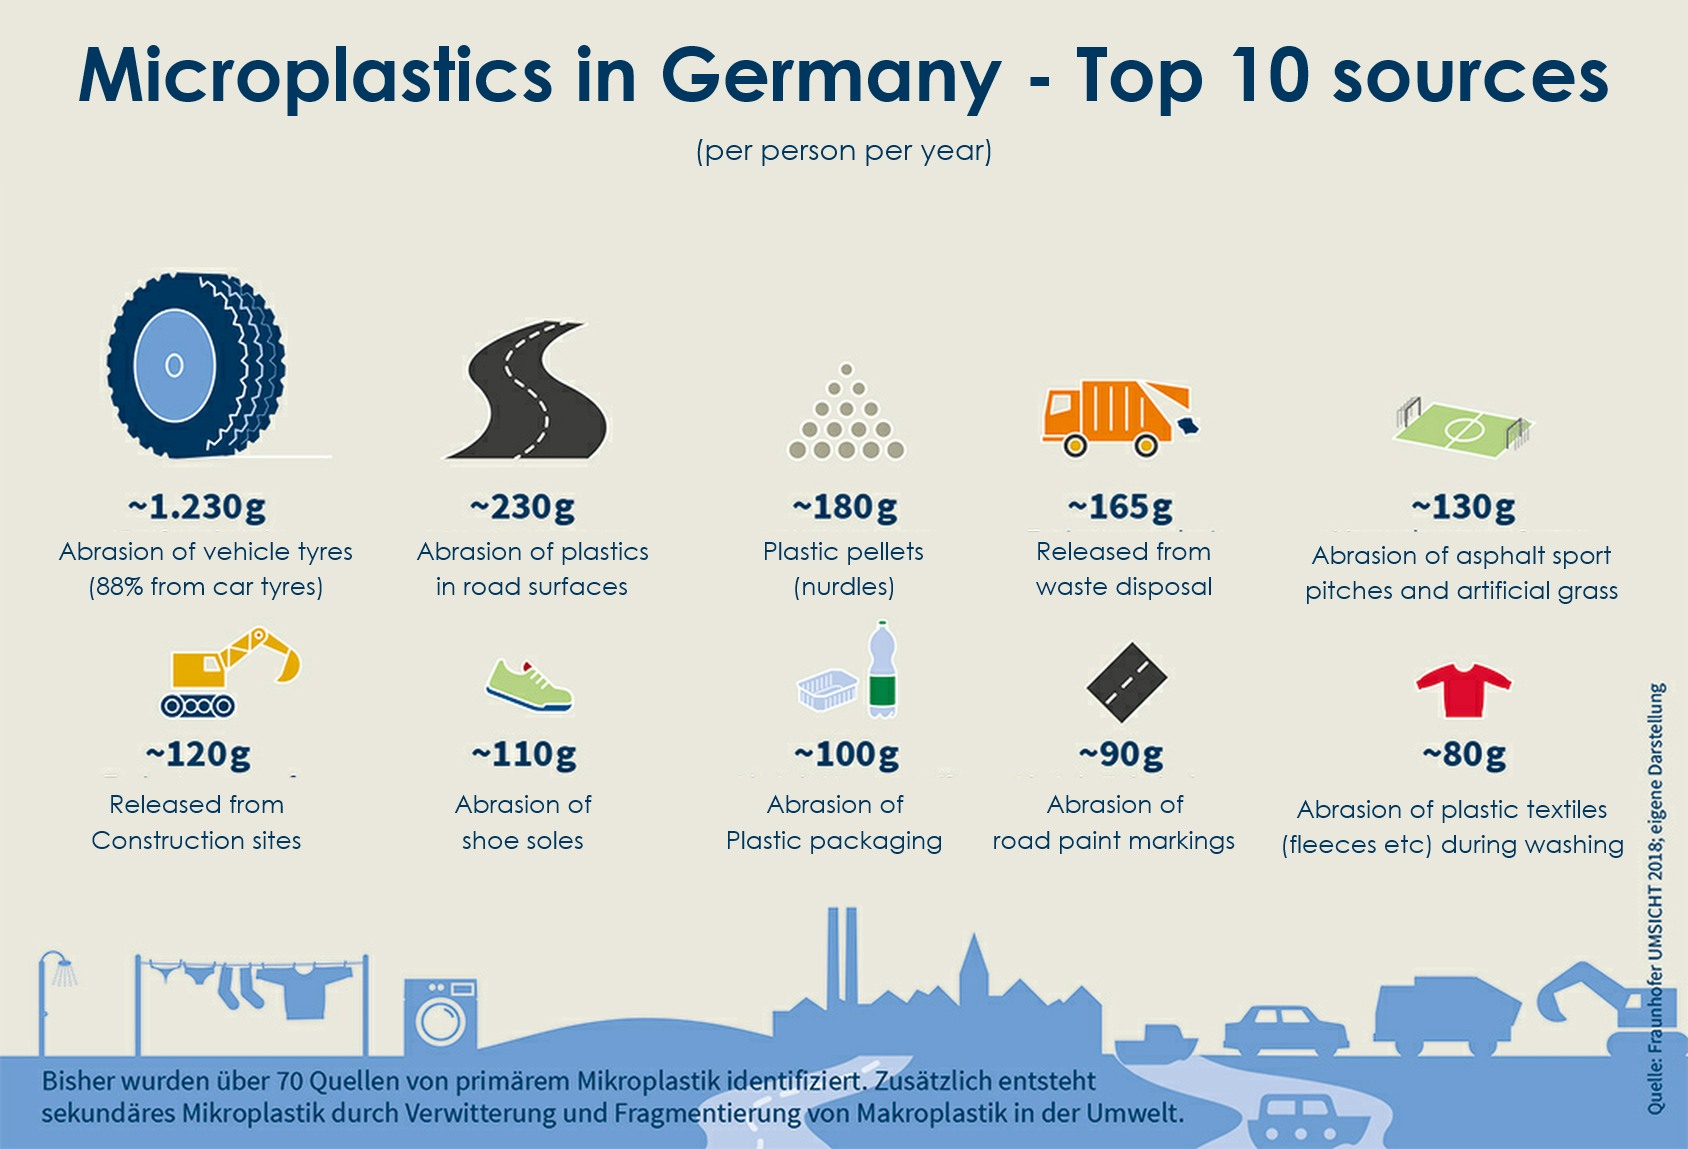 Top 10 sources of Microplastic Pollution in Germany